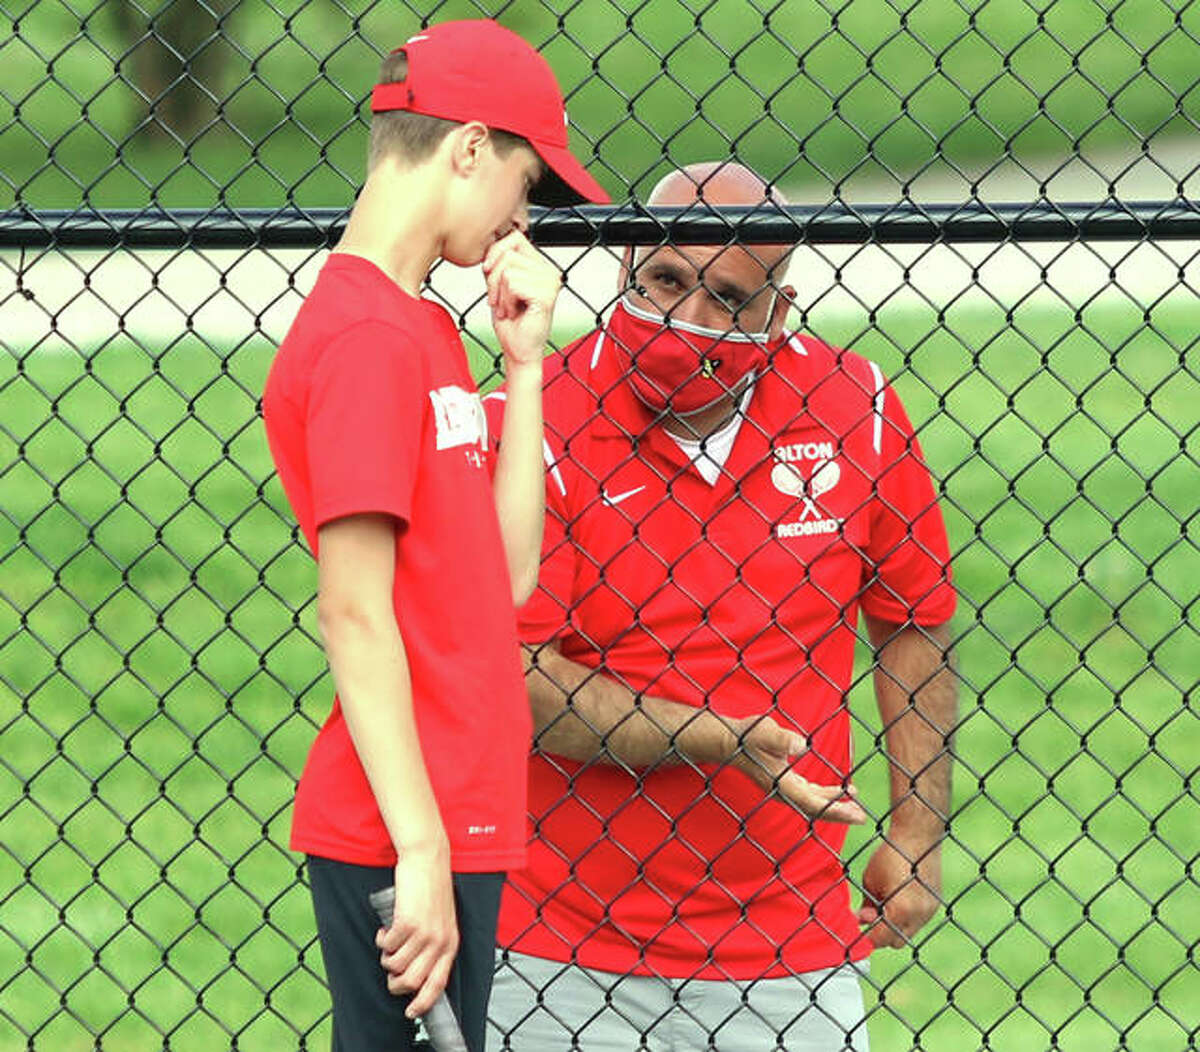 Alton coach Jesse Macias (right) talks with freshman James McKeever during a No. 4 singles match against Marquette Catholic on Thursday at Moore Park's Simpson Tennis Center in Alton.